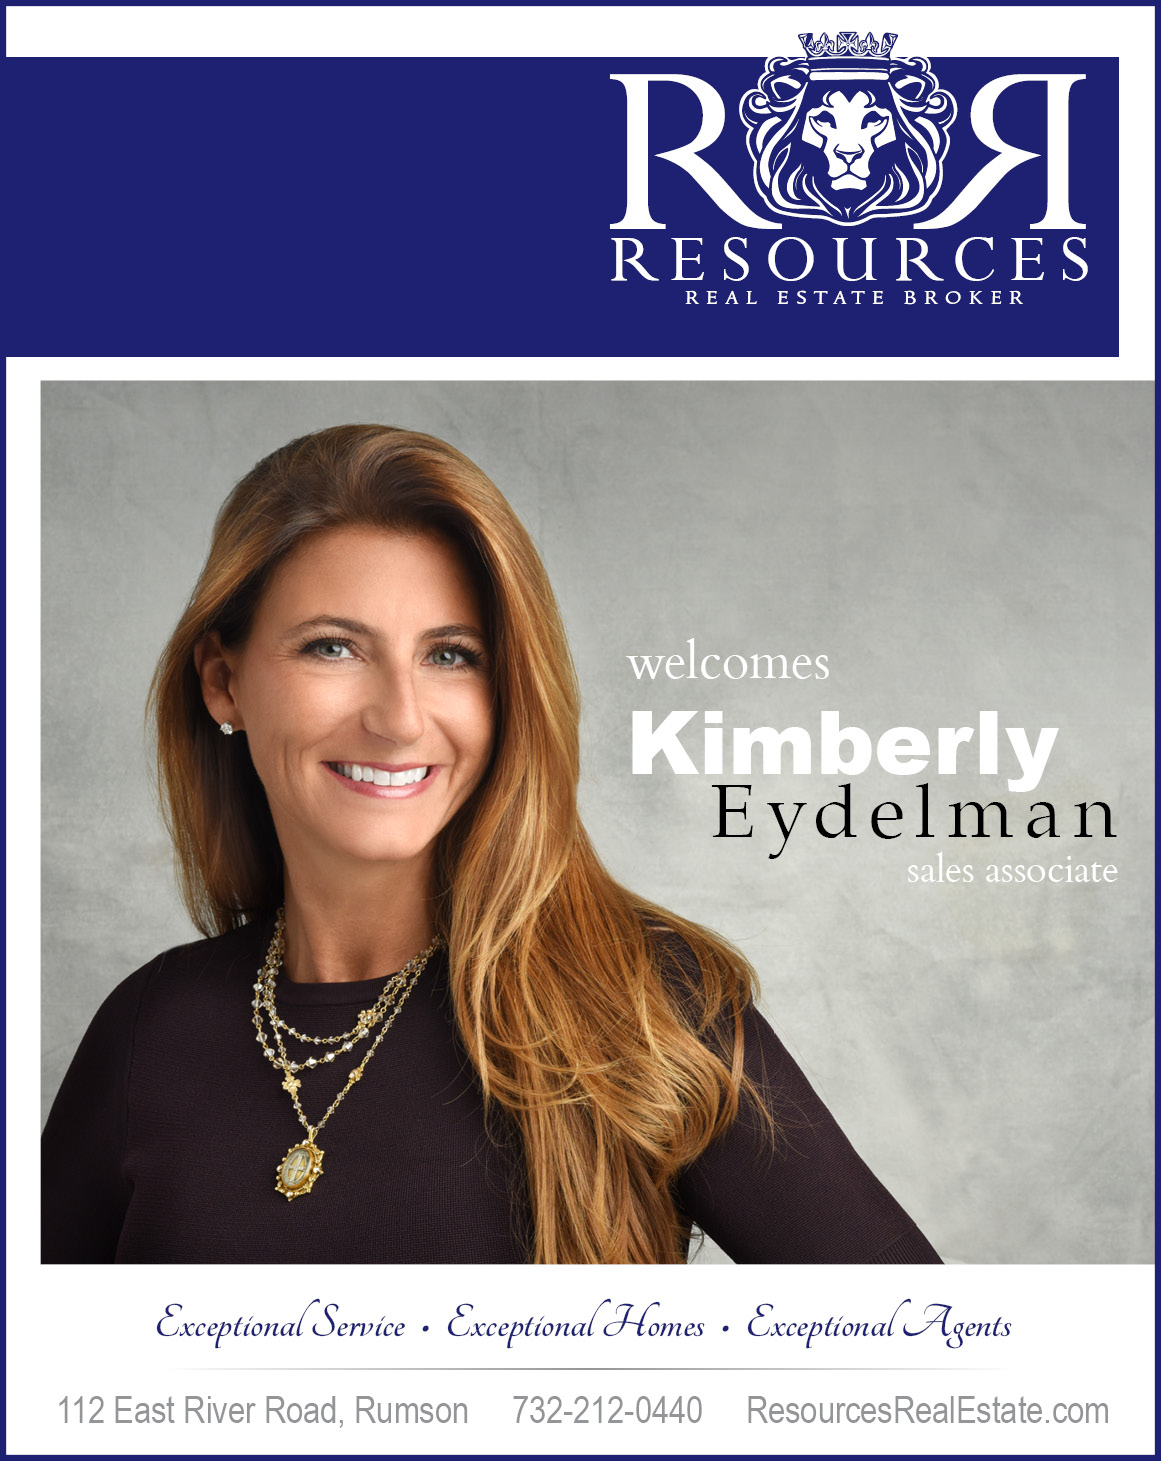 Kimberly Eydelman Journal